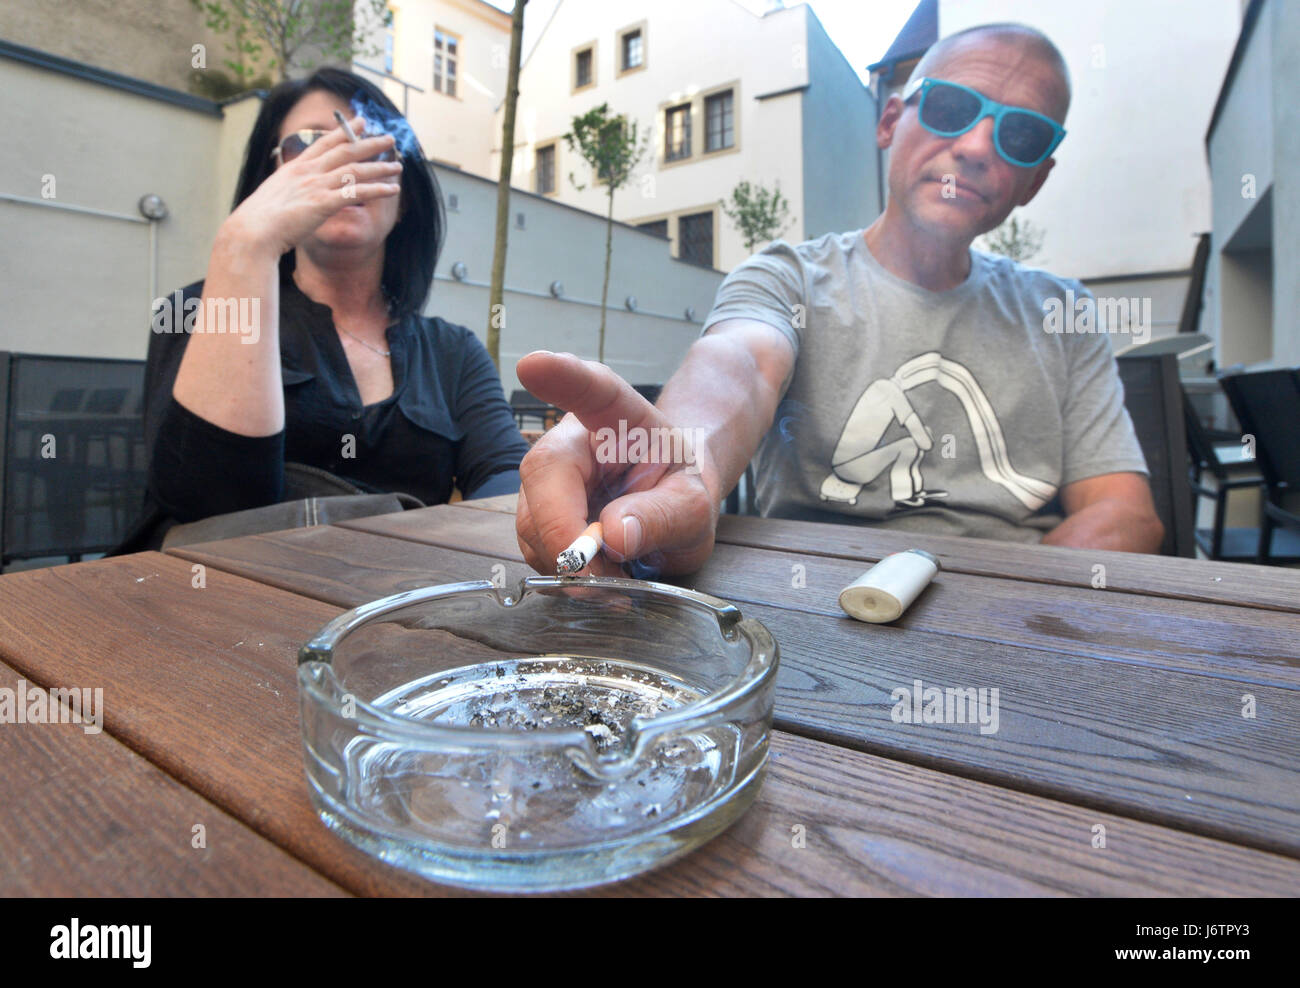 Pilsen, Czech Republic. 19th May, 2017. Woman and man smoke the cigarettes at the pub Beer Factory in Plzen, Czech - Stock Image